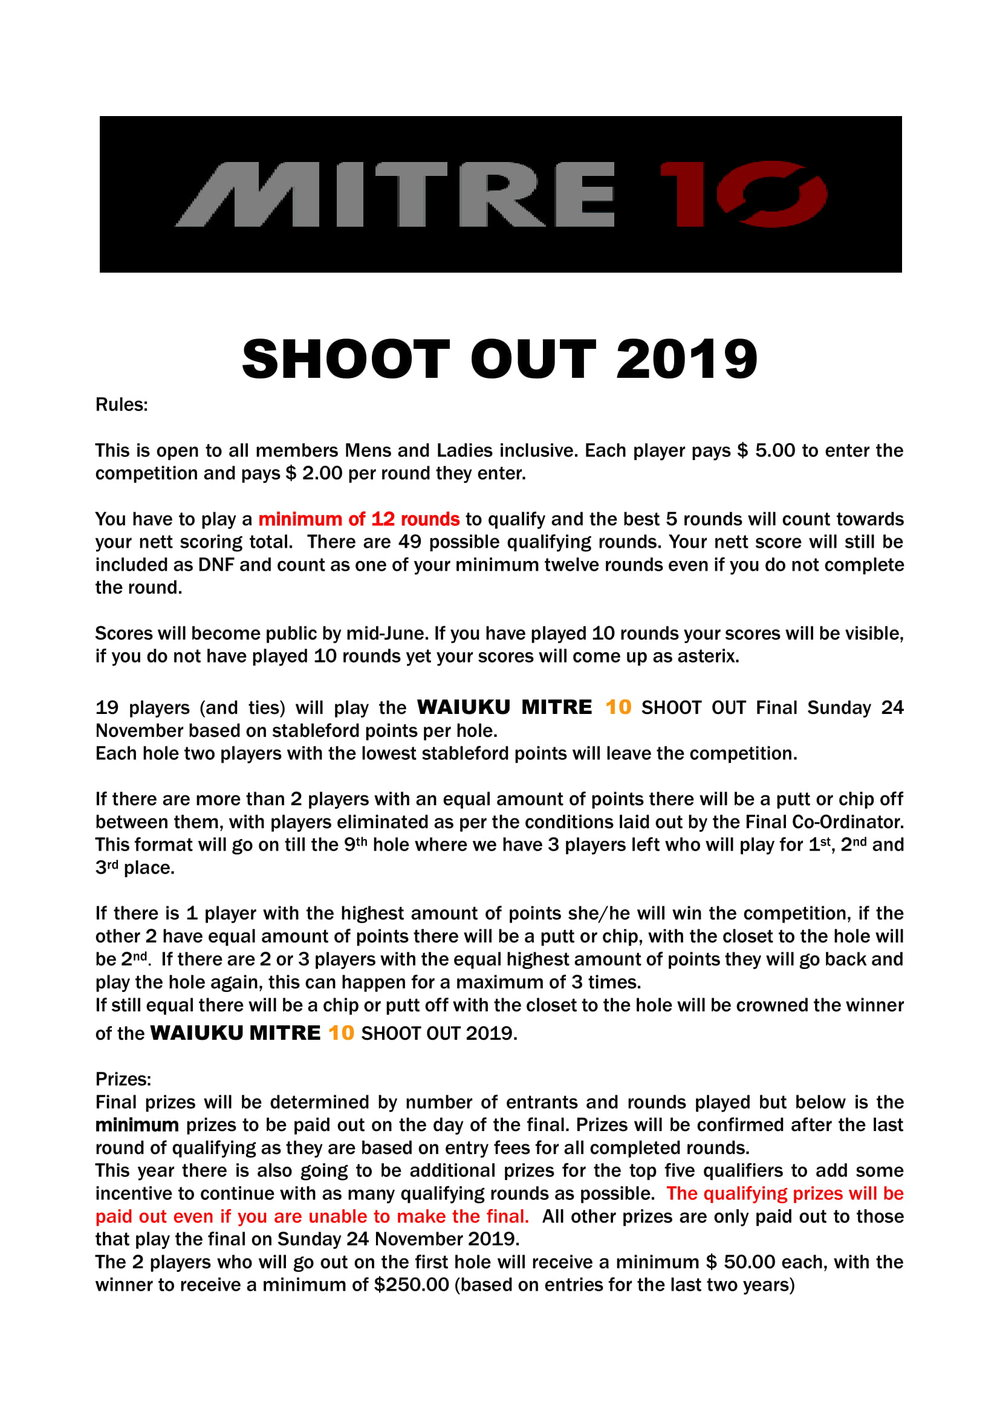 MITRE 10 SHOOT OUT 2019-1.jpg